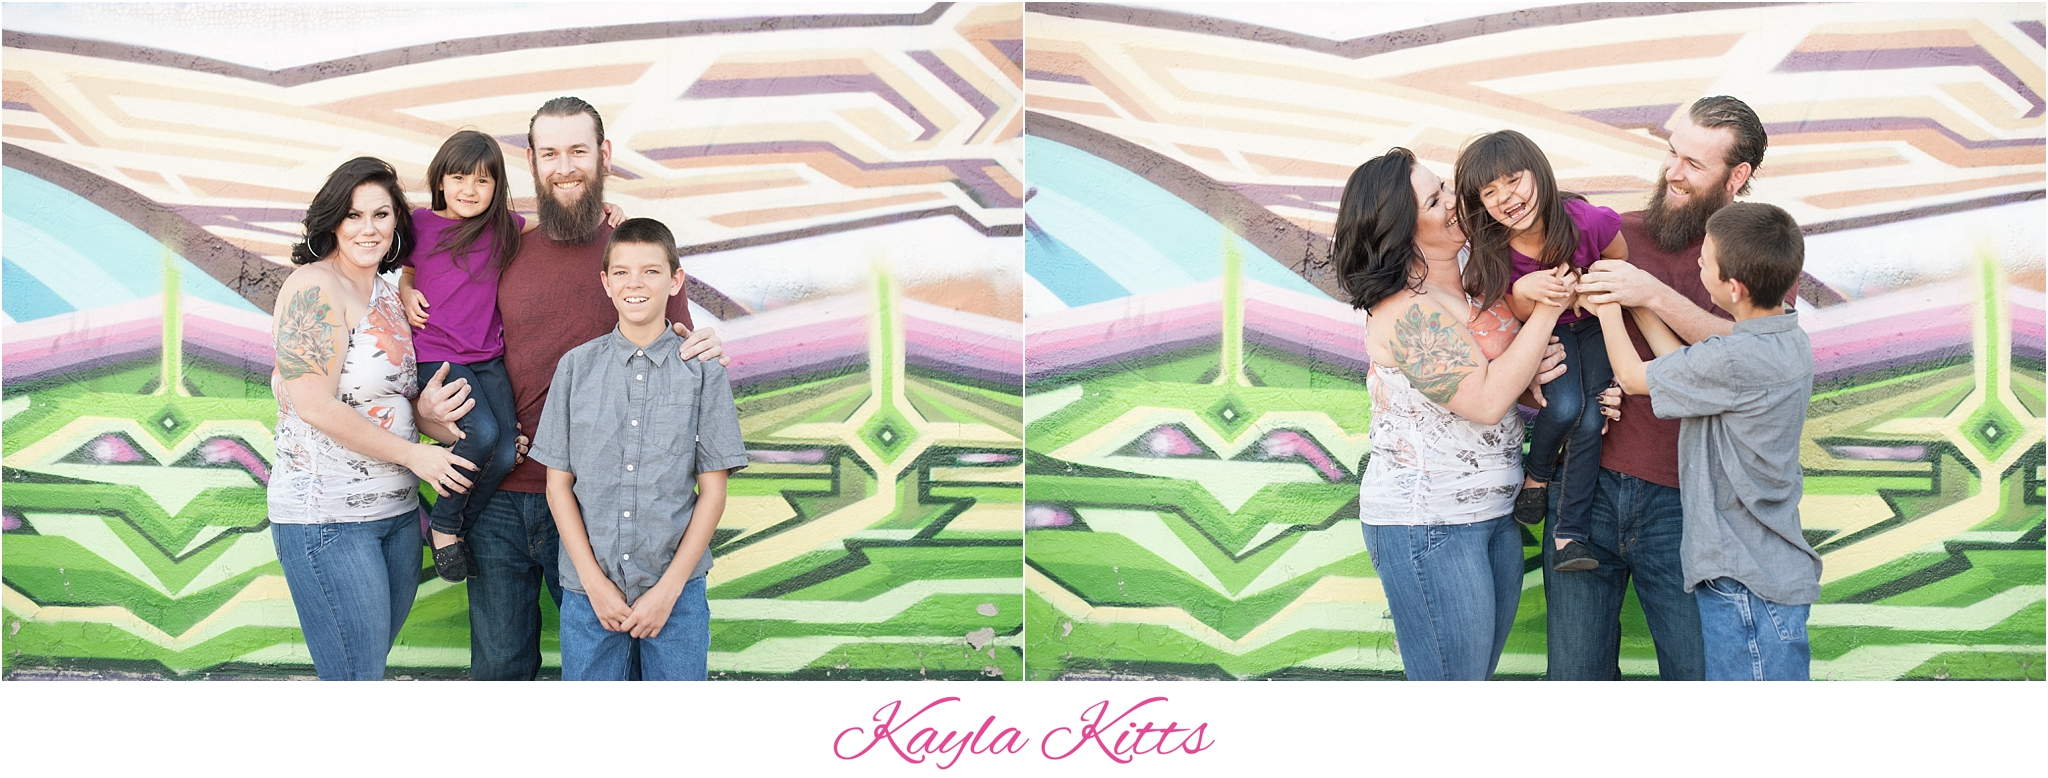 kayla kitts photography - albuquerque wedding photographer - albuquerque engagement photographer - nm wedding - albuquerque wedding - nm wedding - unm engagement - bosque engagement session_0001.jpg